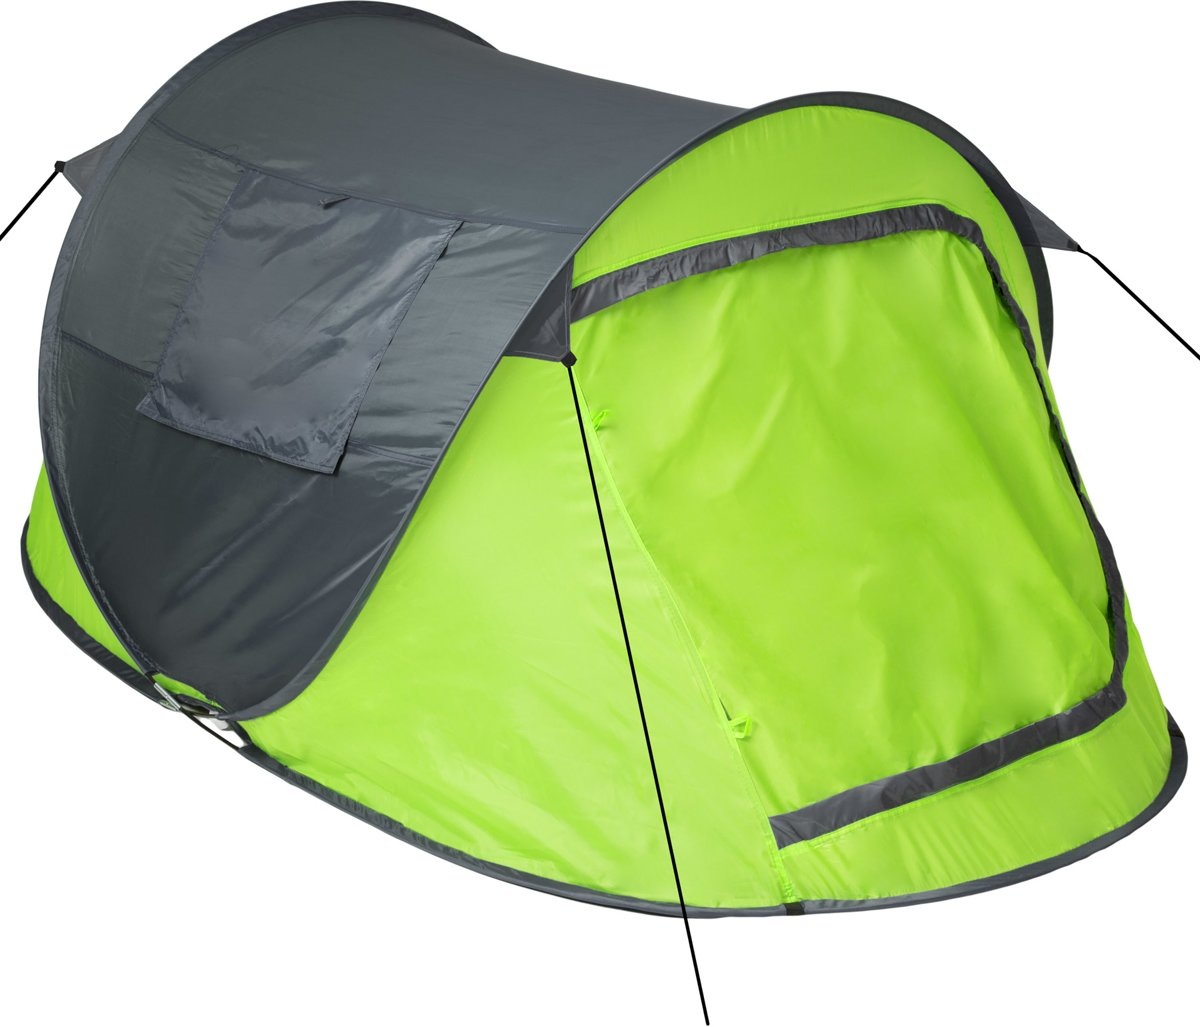 1 Persoons Pop Up Tent Tectake Pop Up Tent Waterdicht Groen Grijs 401675